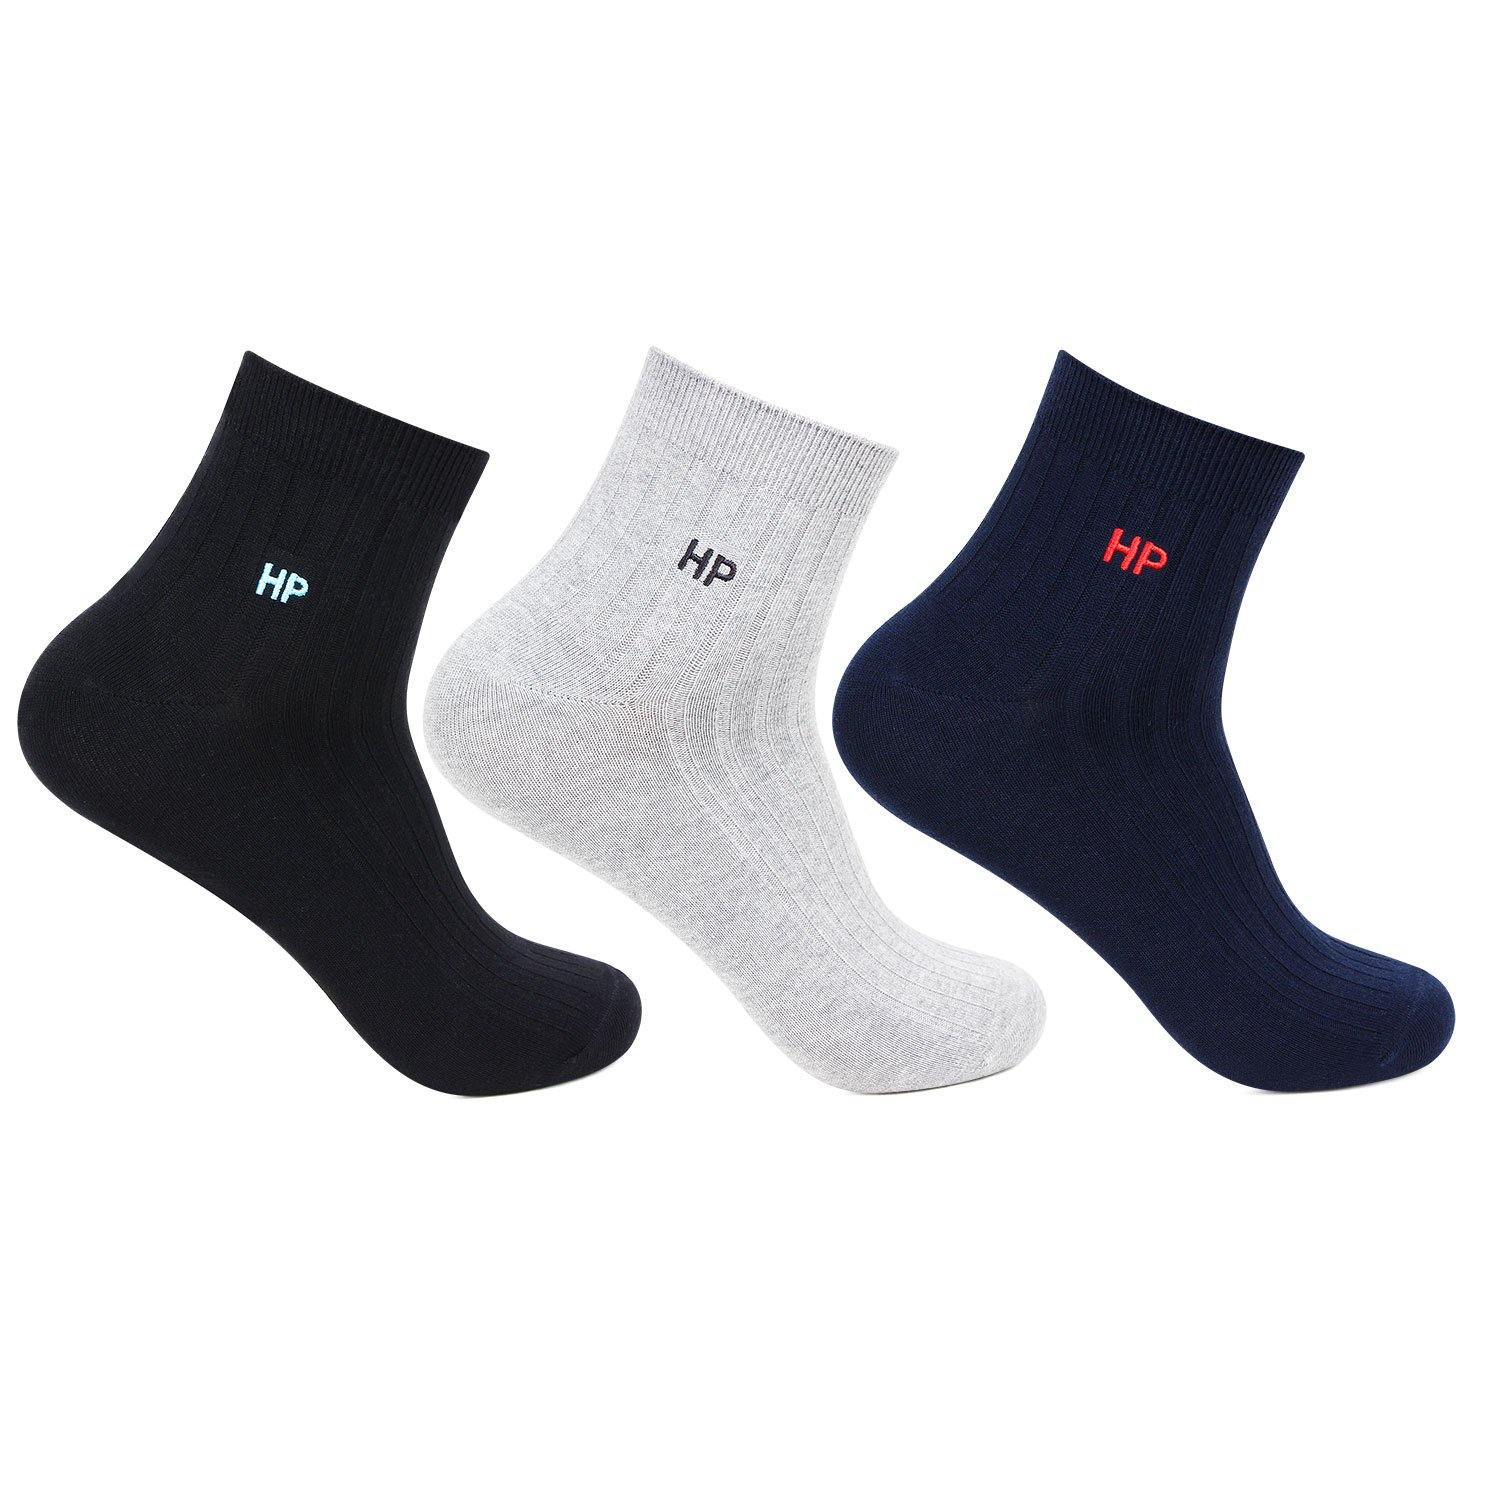 Hush Puppies Men's Cotton Ankle Rib Socks - Pack of 3